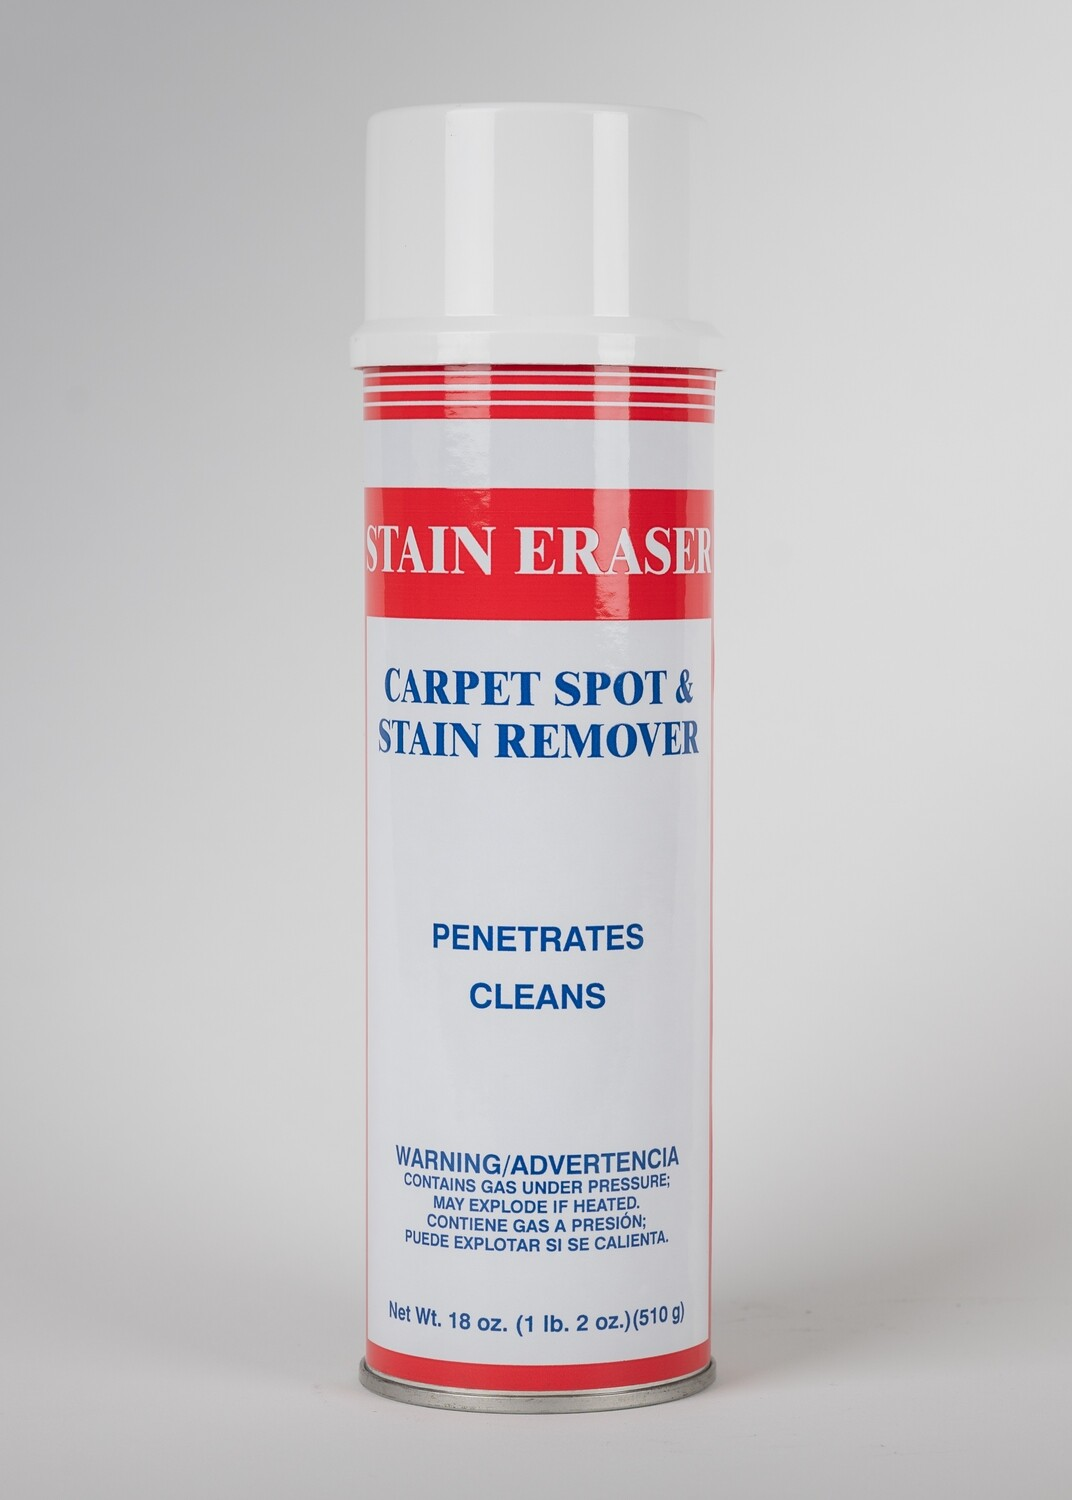 Stain Eraser - Carpet Spot & Stain Remover, 18oz. Can - by The Cleaner's Depot